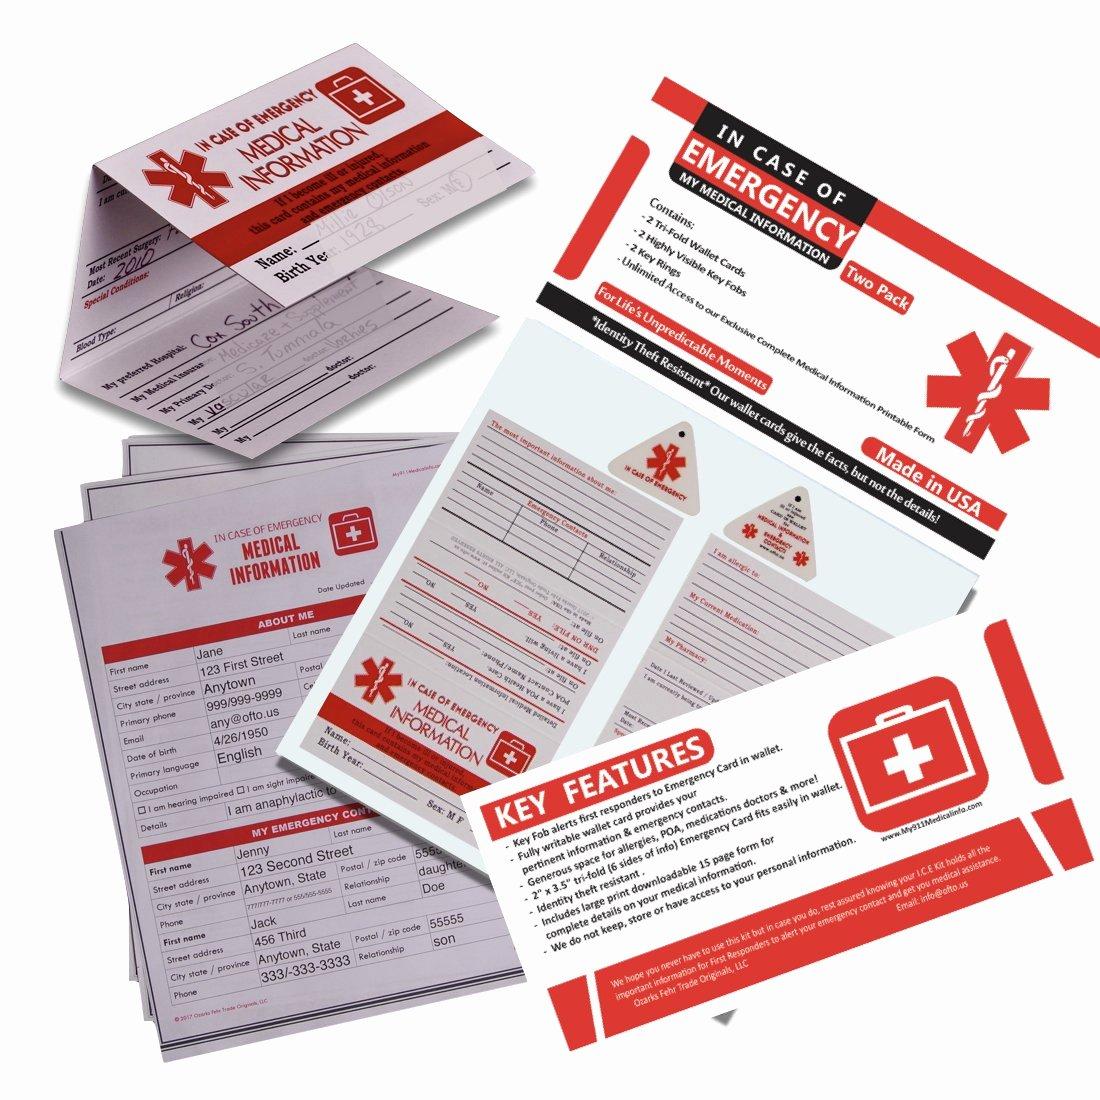 Medication Cards for Wallet Best Of Amazon Emergency Medical Information Id Card 4 Pack